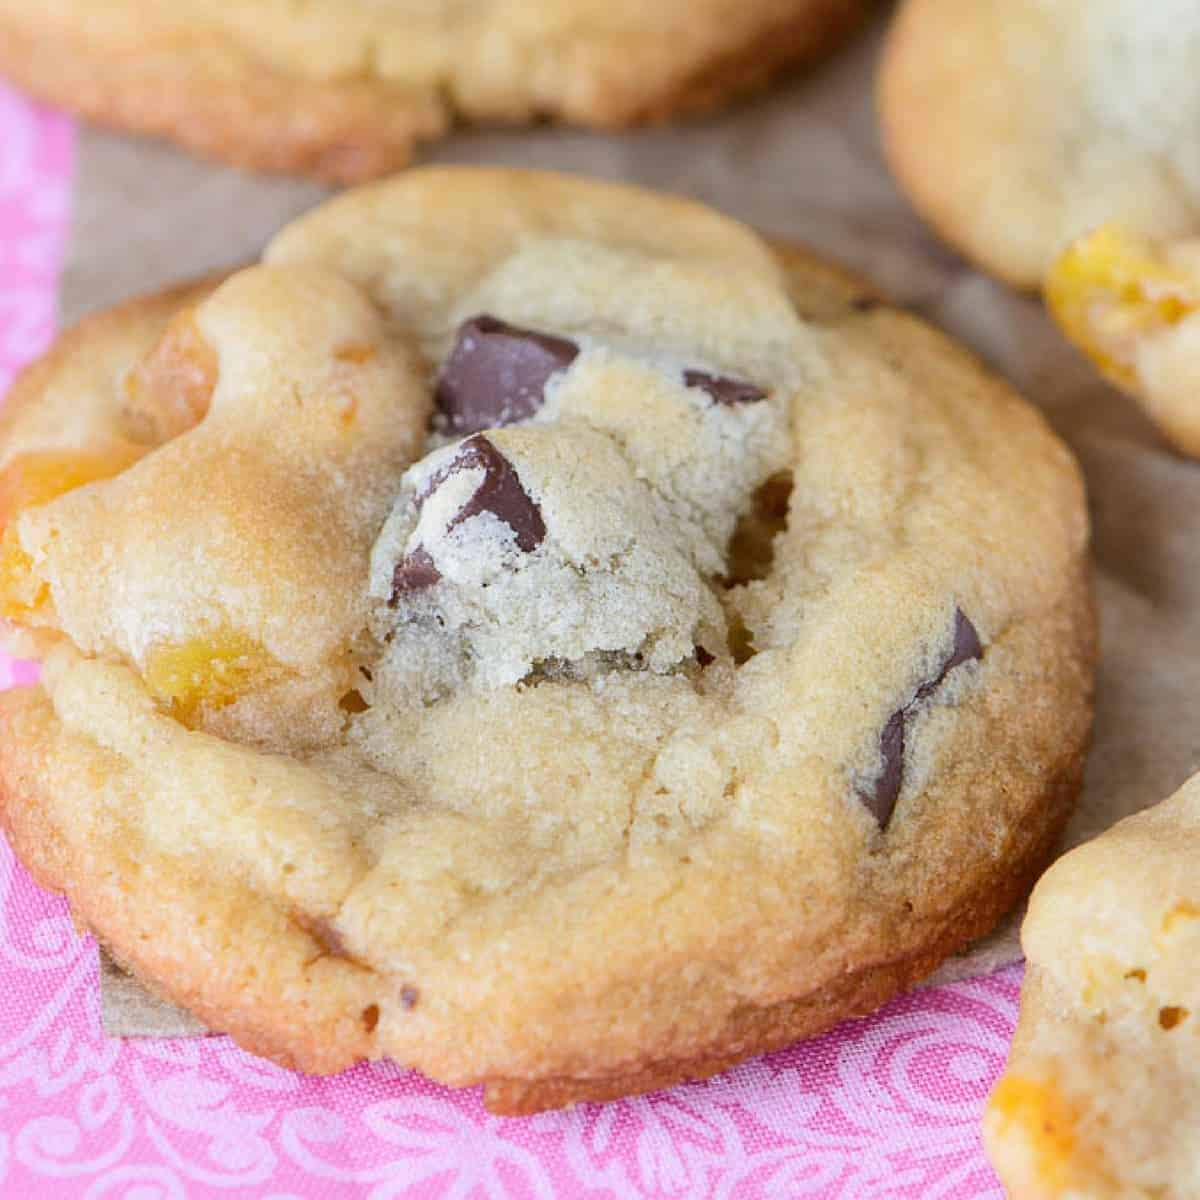 angled view of chocolate chunk apricot cookies on a pink fabric